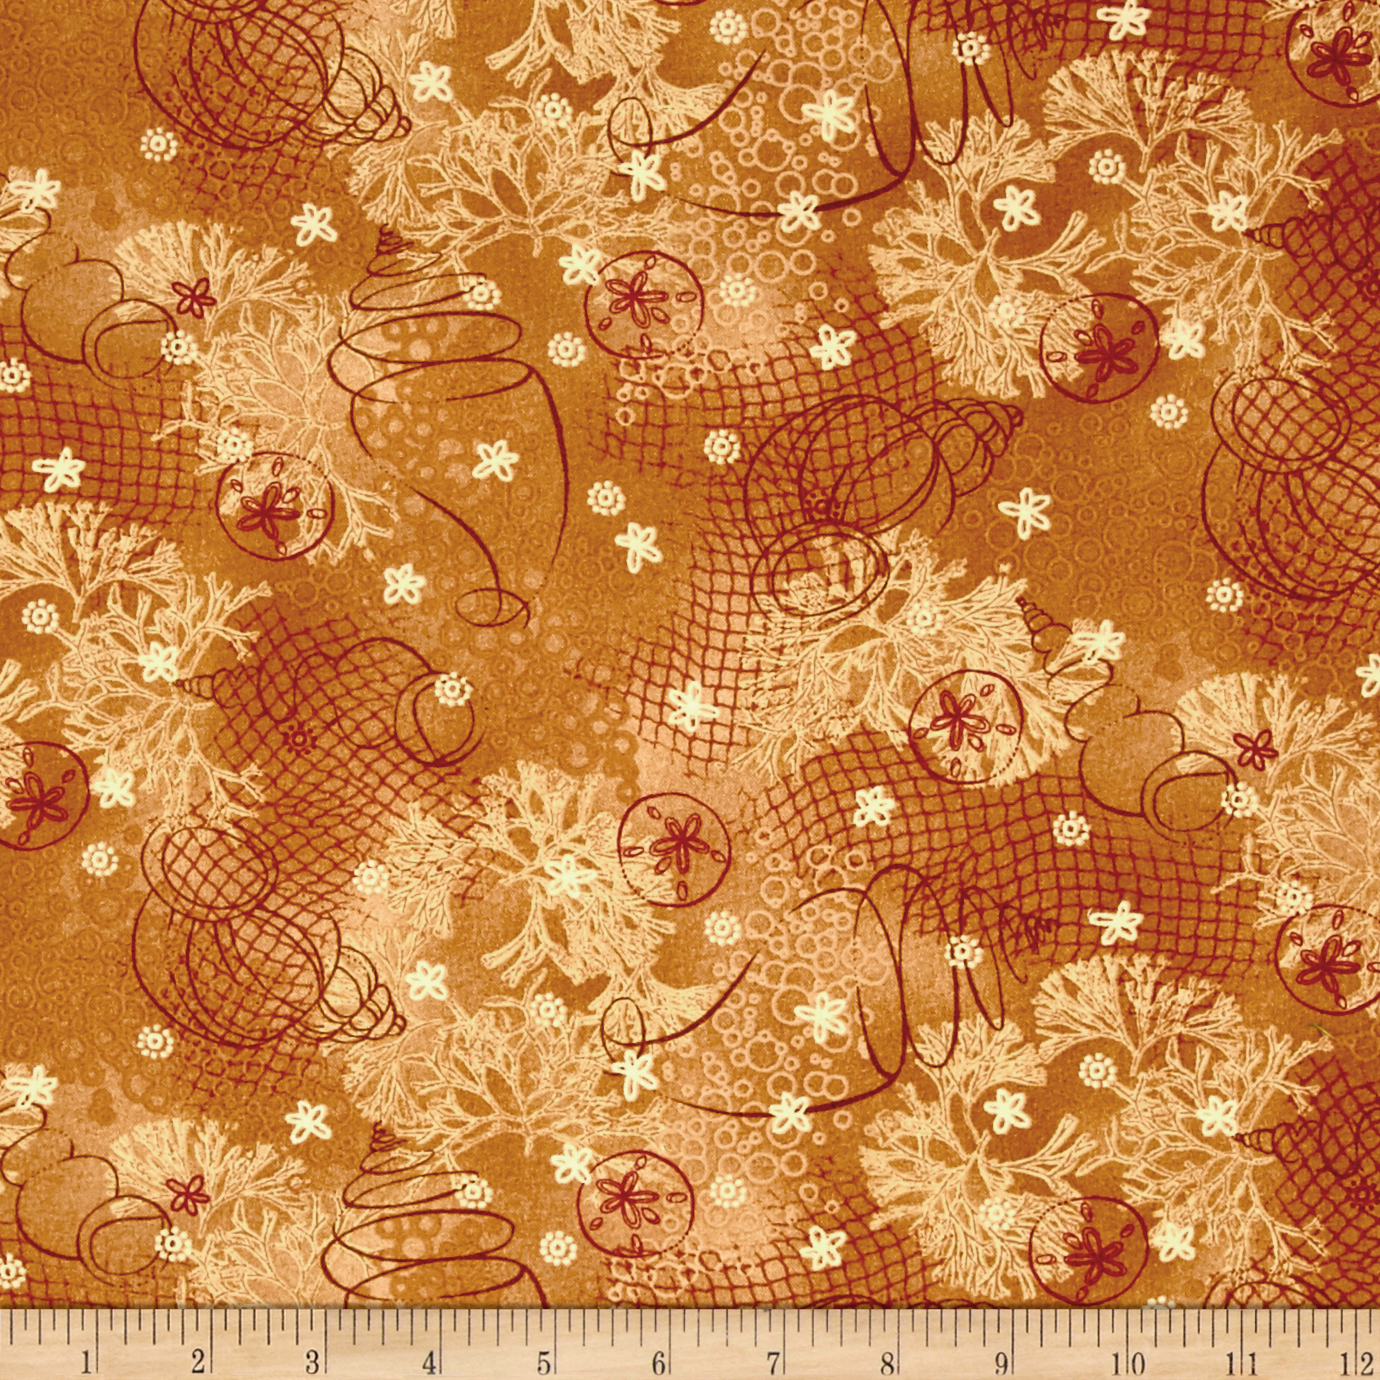 Better At The Lake Shells Cheddar Fabric by Henry Glass in USA